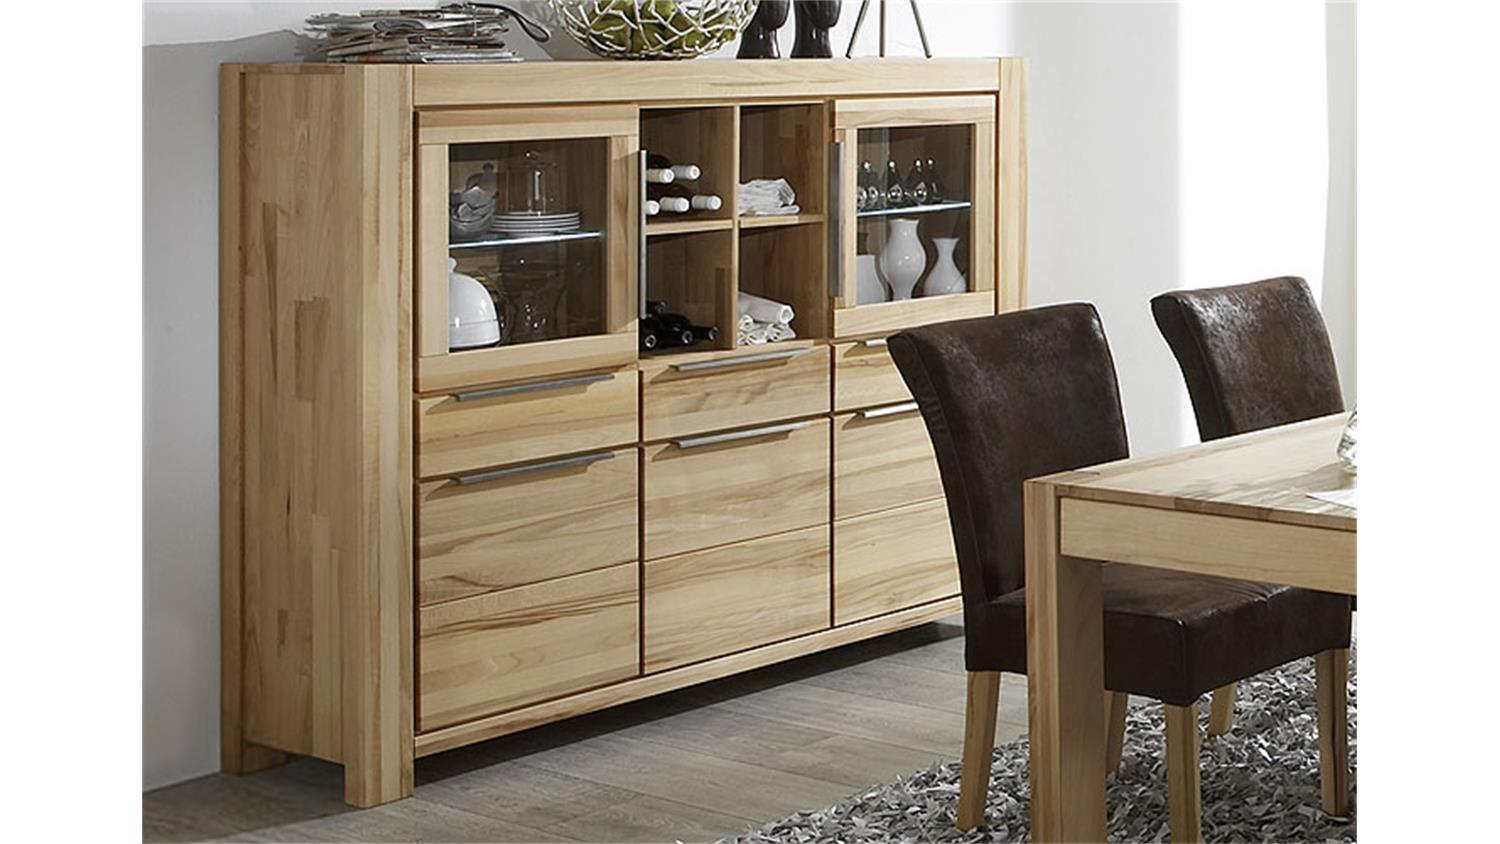 Highboard nena sideboard vitrine in kernbuche massiv ge lt for Instore mobel martin